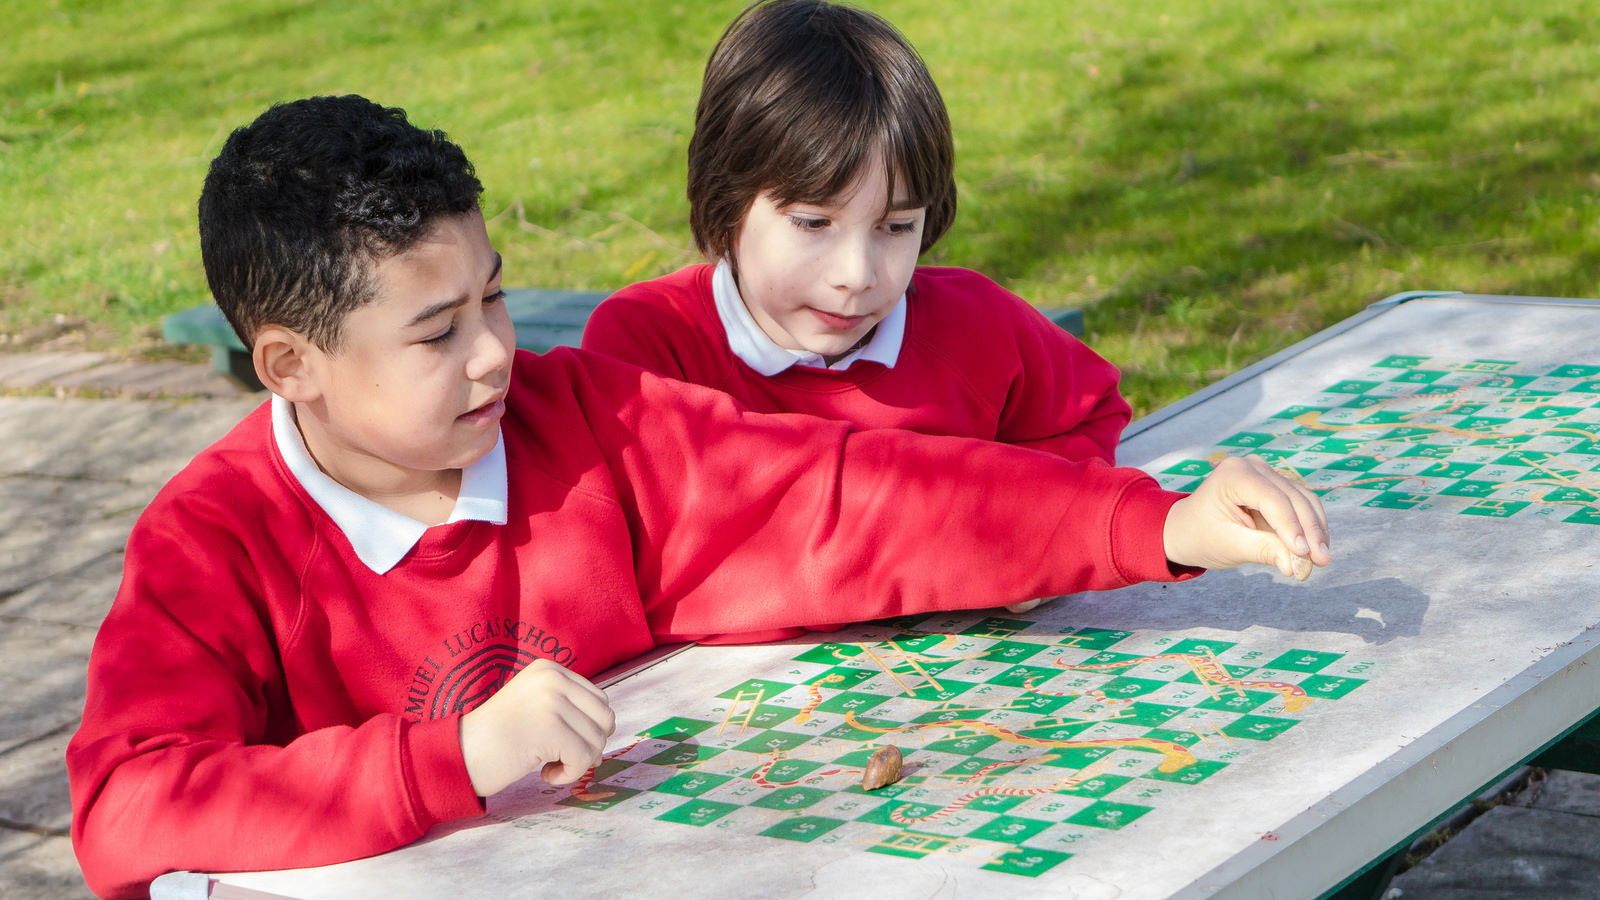 Boys playing outdoor snakes and ladders